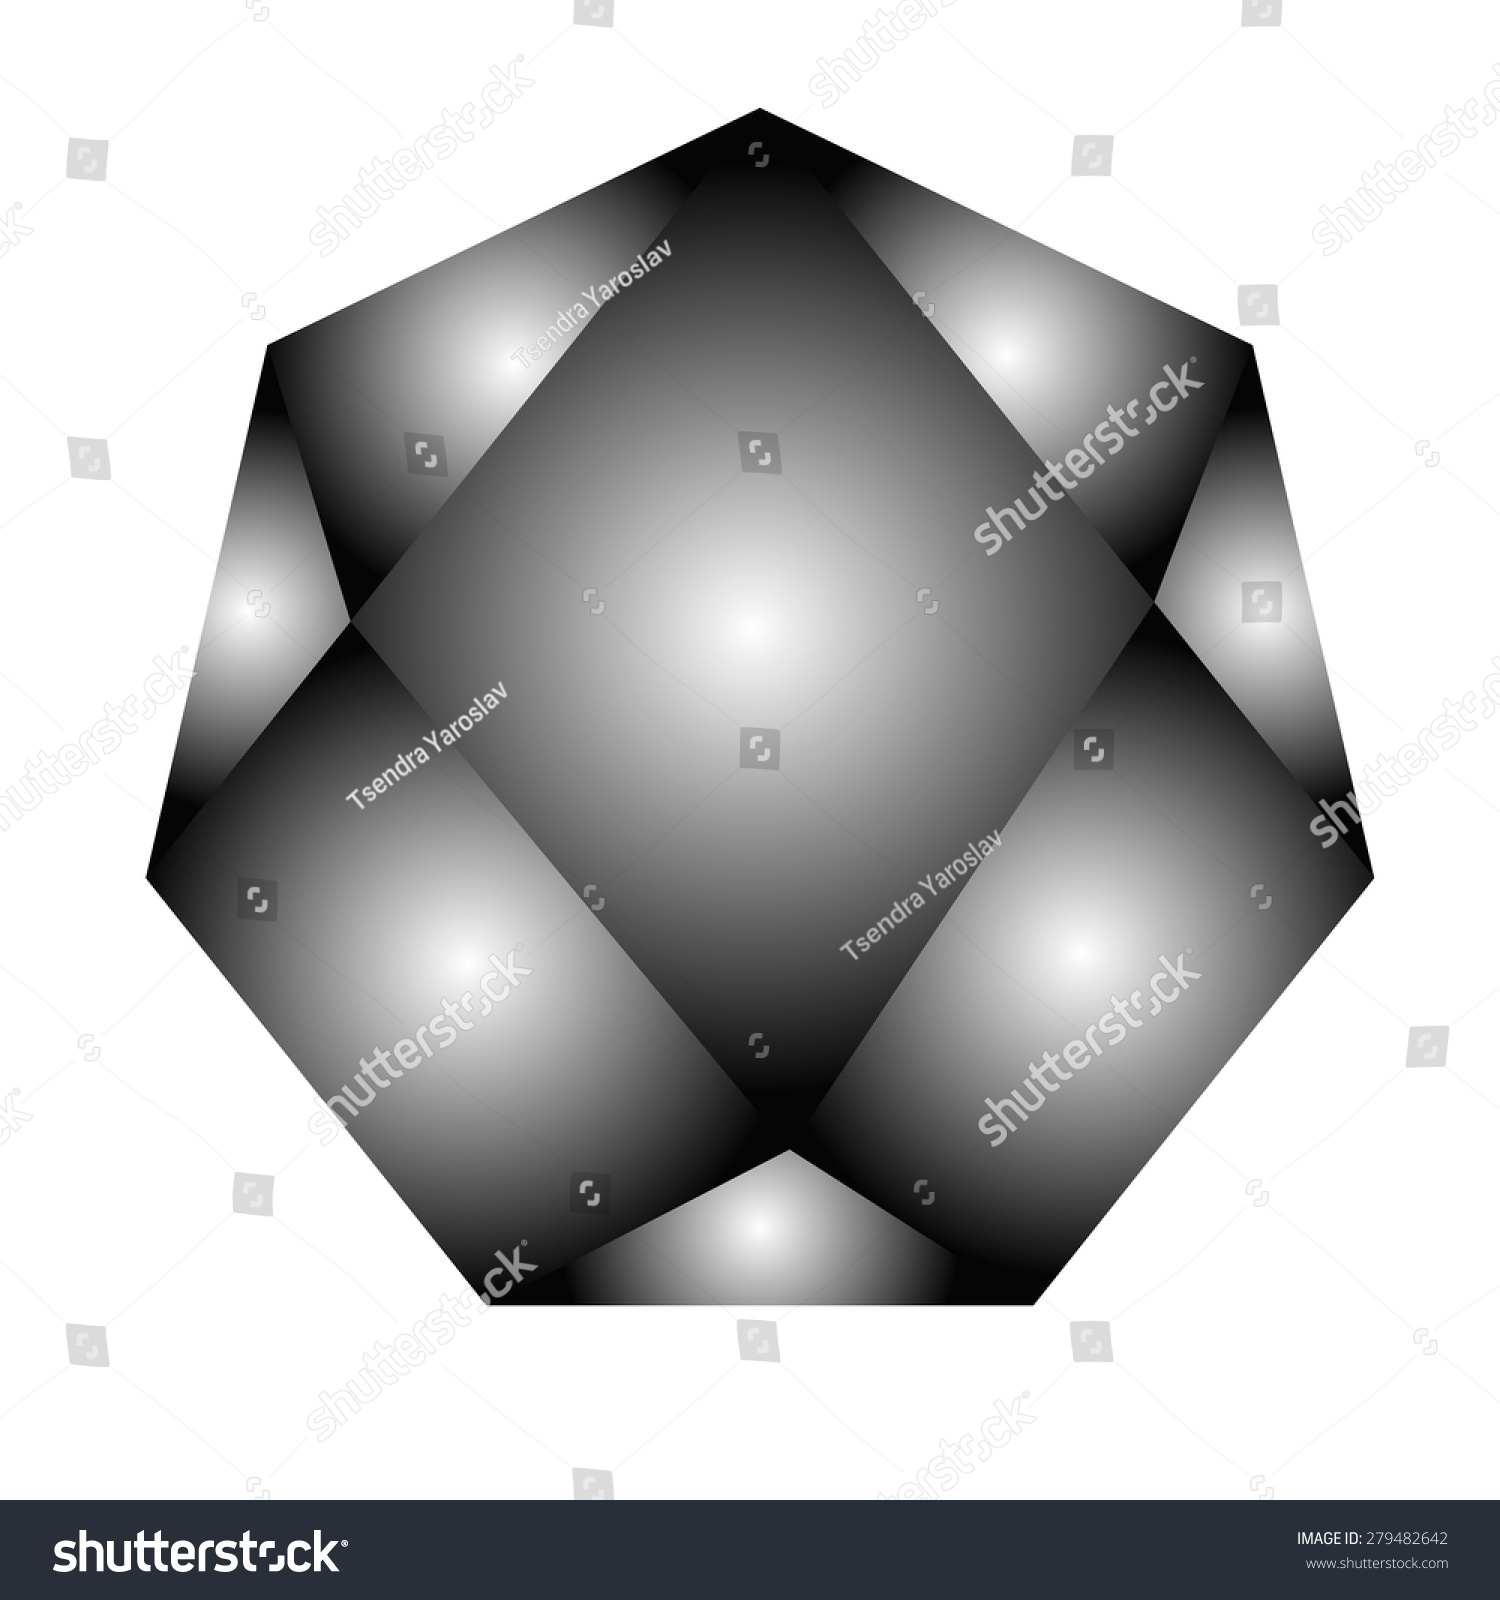 white black polygon illustration free objects royalty background eps image stock vector set diamond